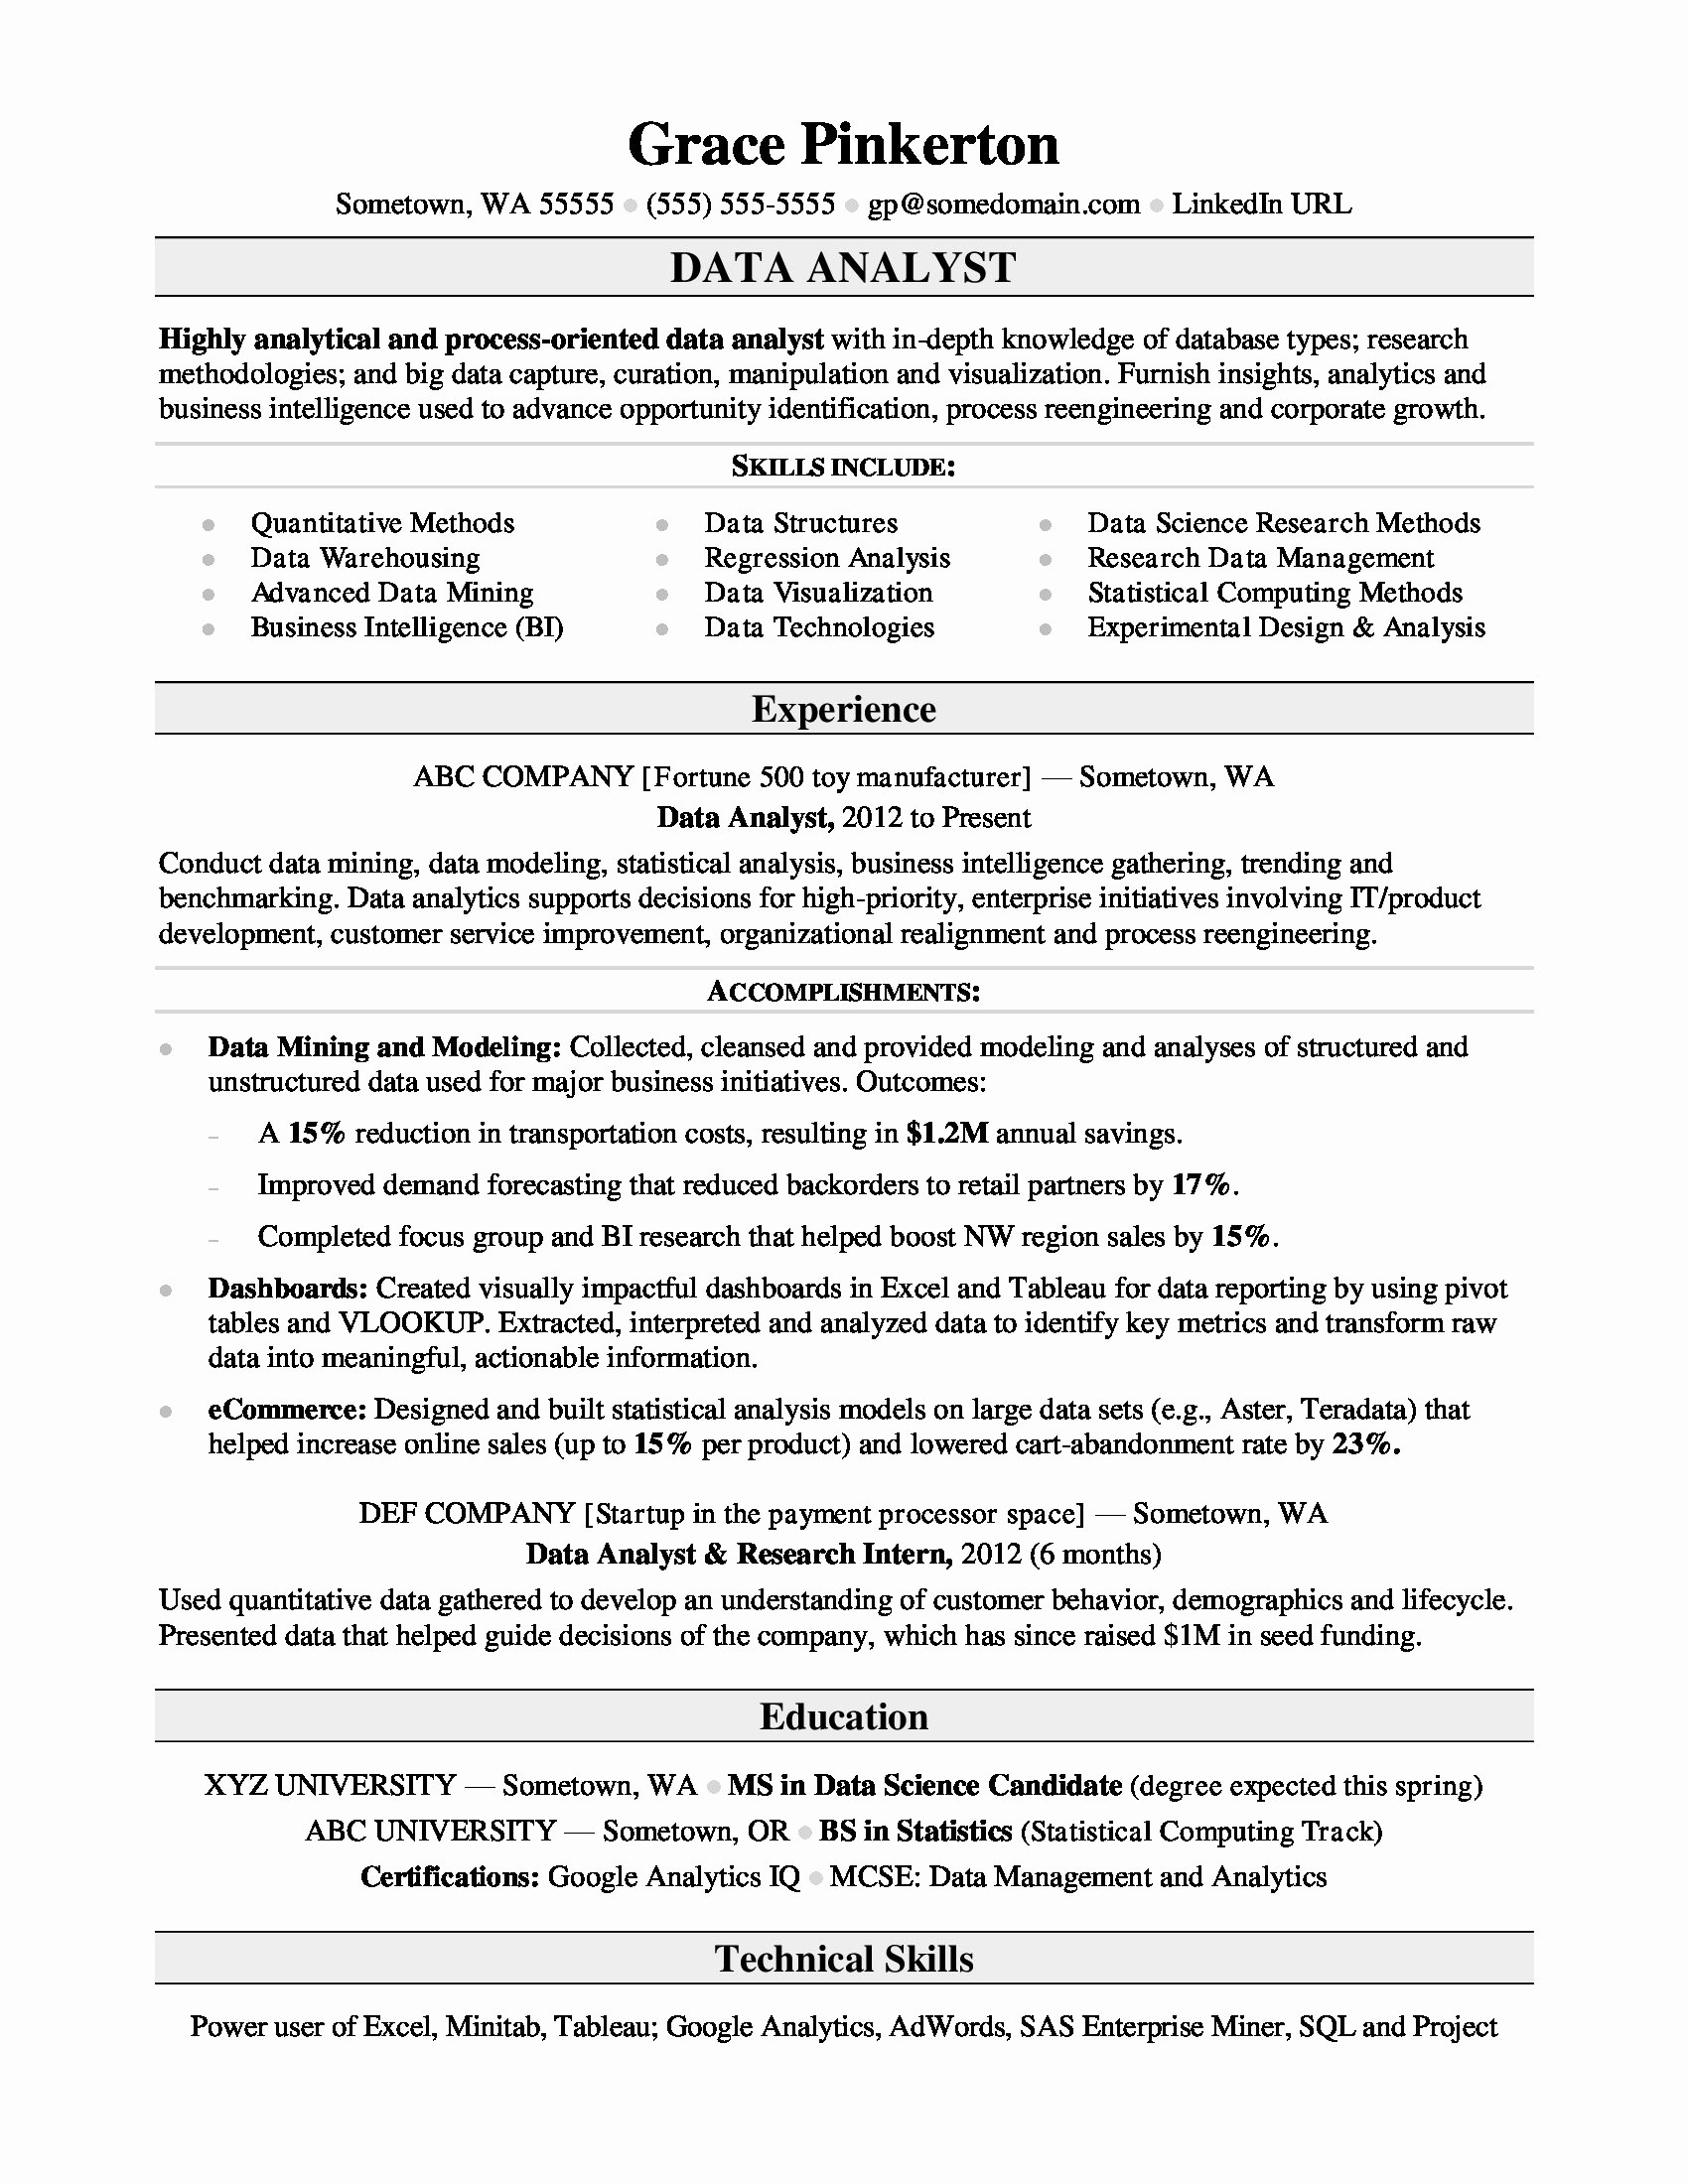 Entry Level Data Analyst Resume - Financial Analyst Resume Lovely Sample Resumes 2018 Leoncapers